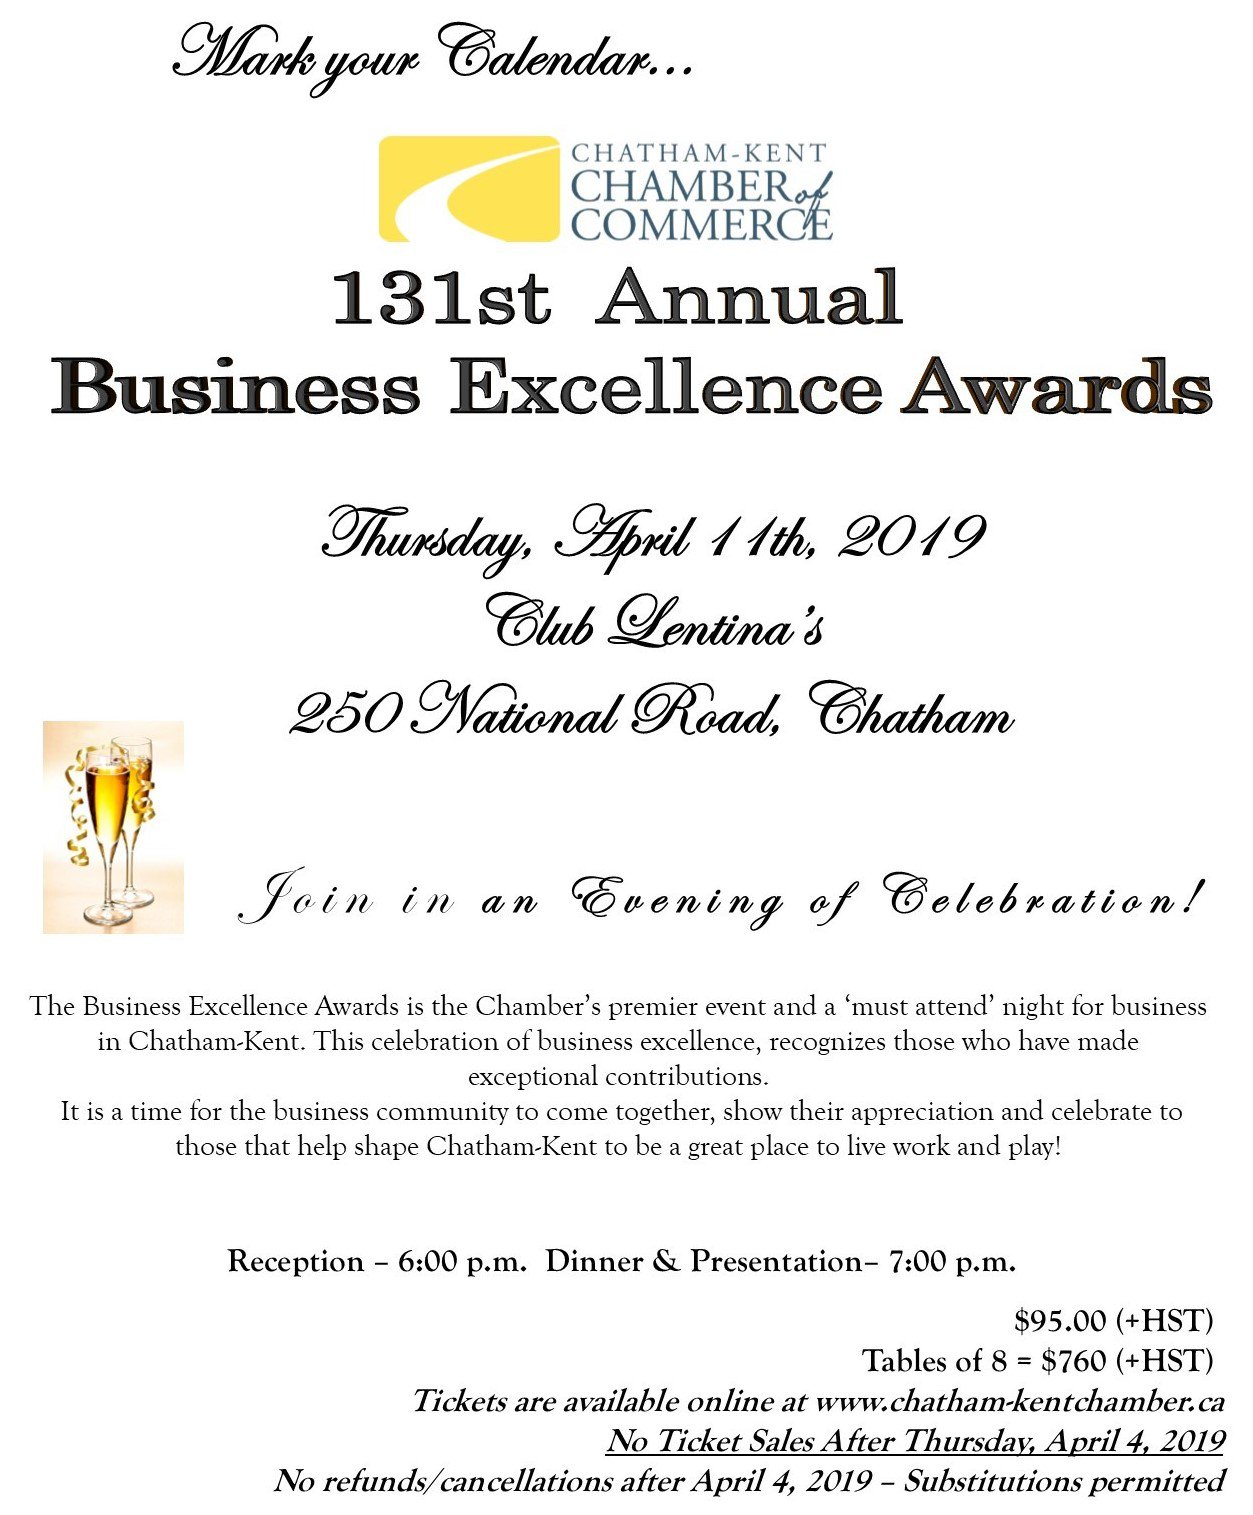 131 Business Excellence Award @ Club Lentina's